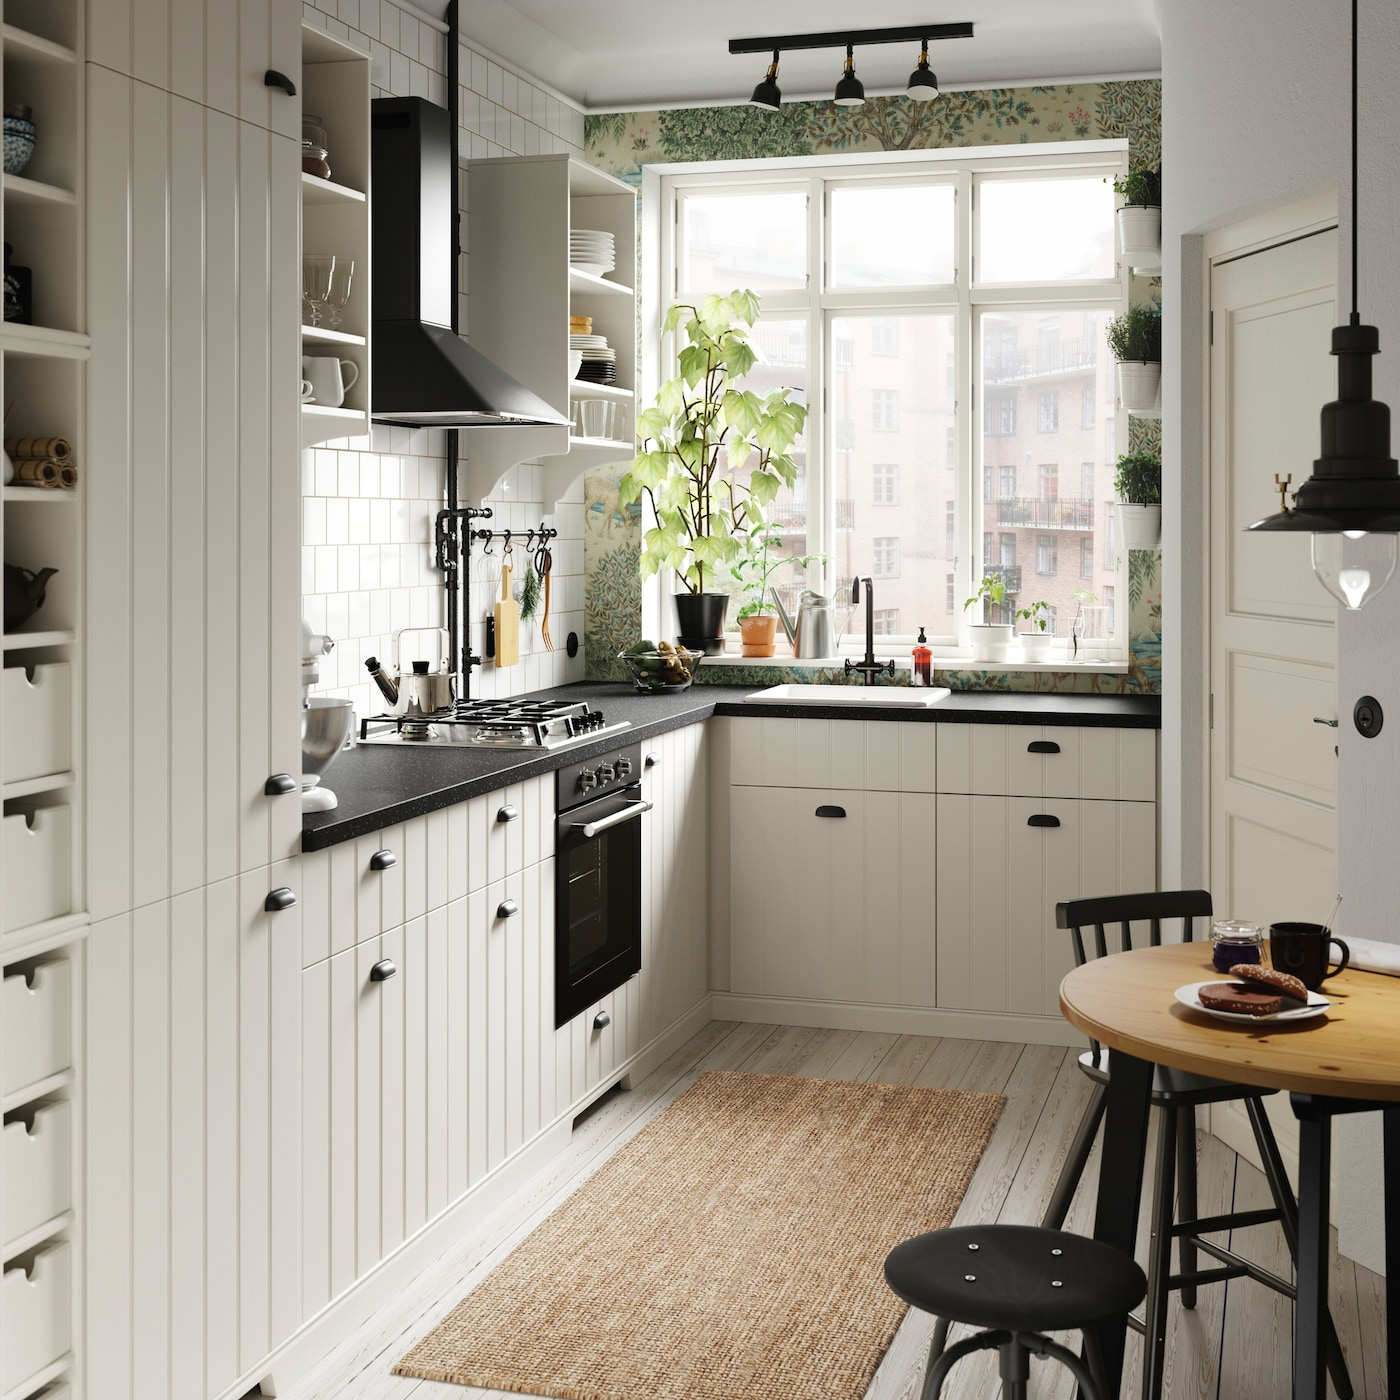 IKEA HITTARP white slatted kitchen door fronts with slats bring a country farmhouse style to this small kitchen.